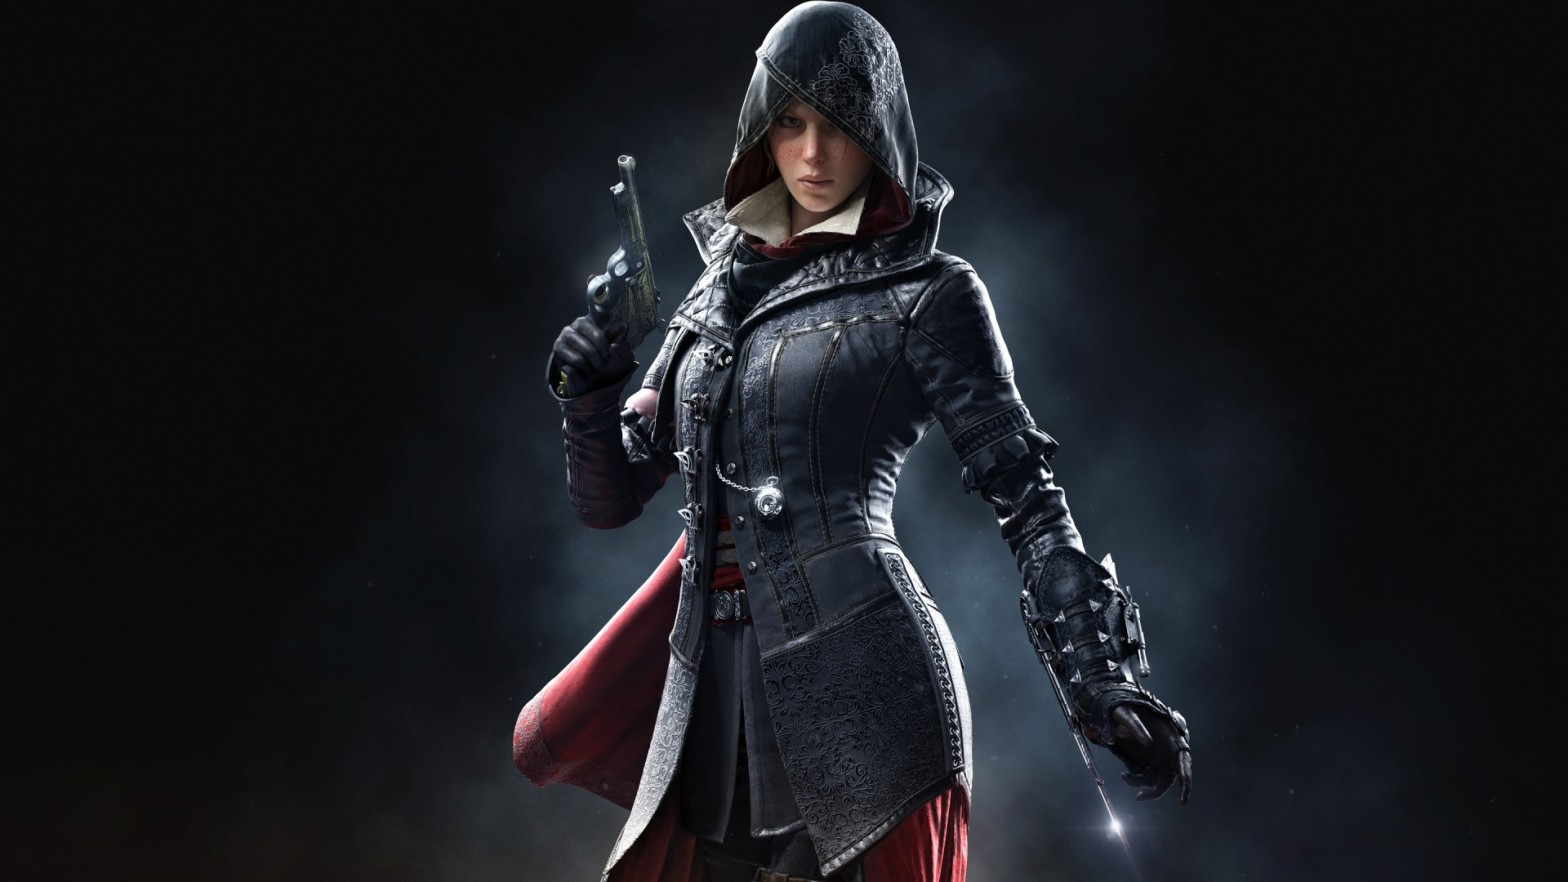 Evie Frye : The best gifs are on giphy.